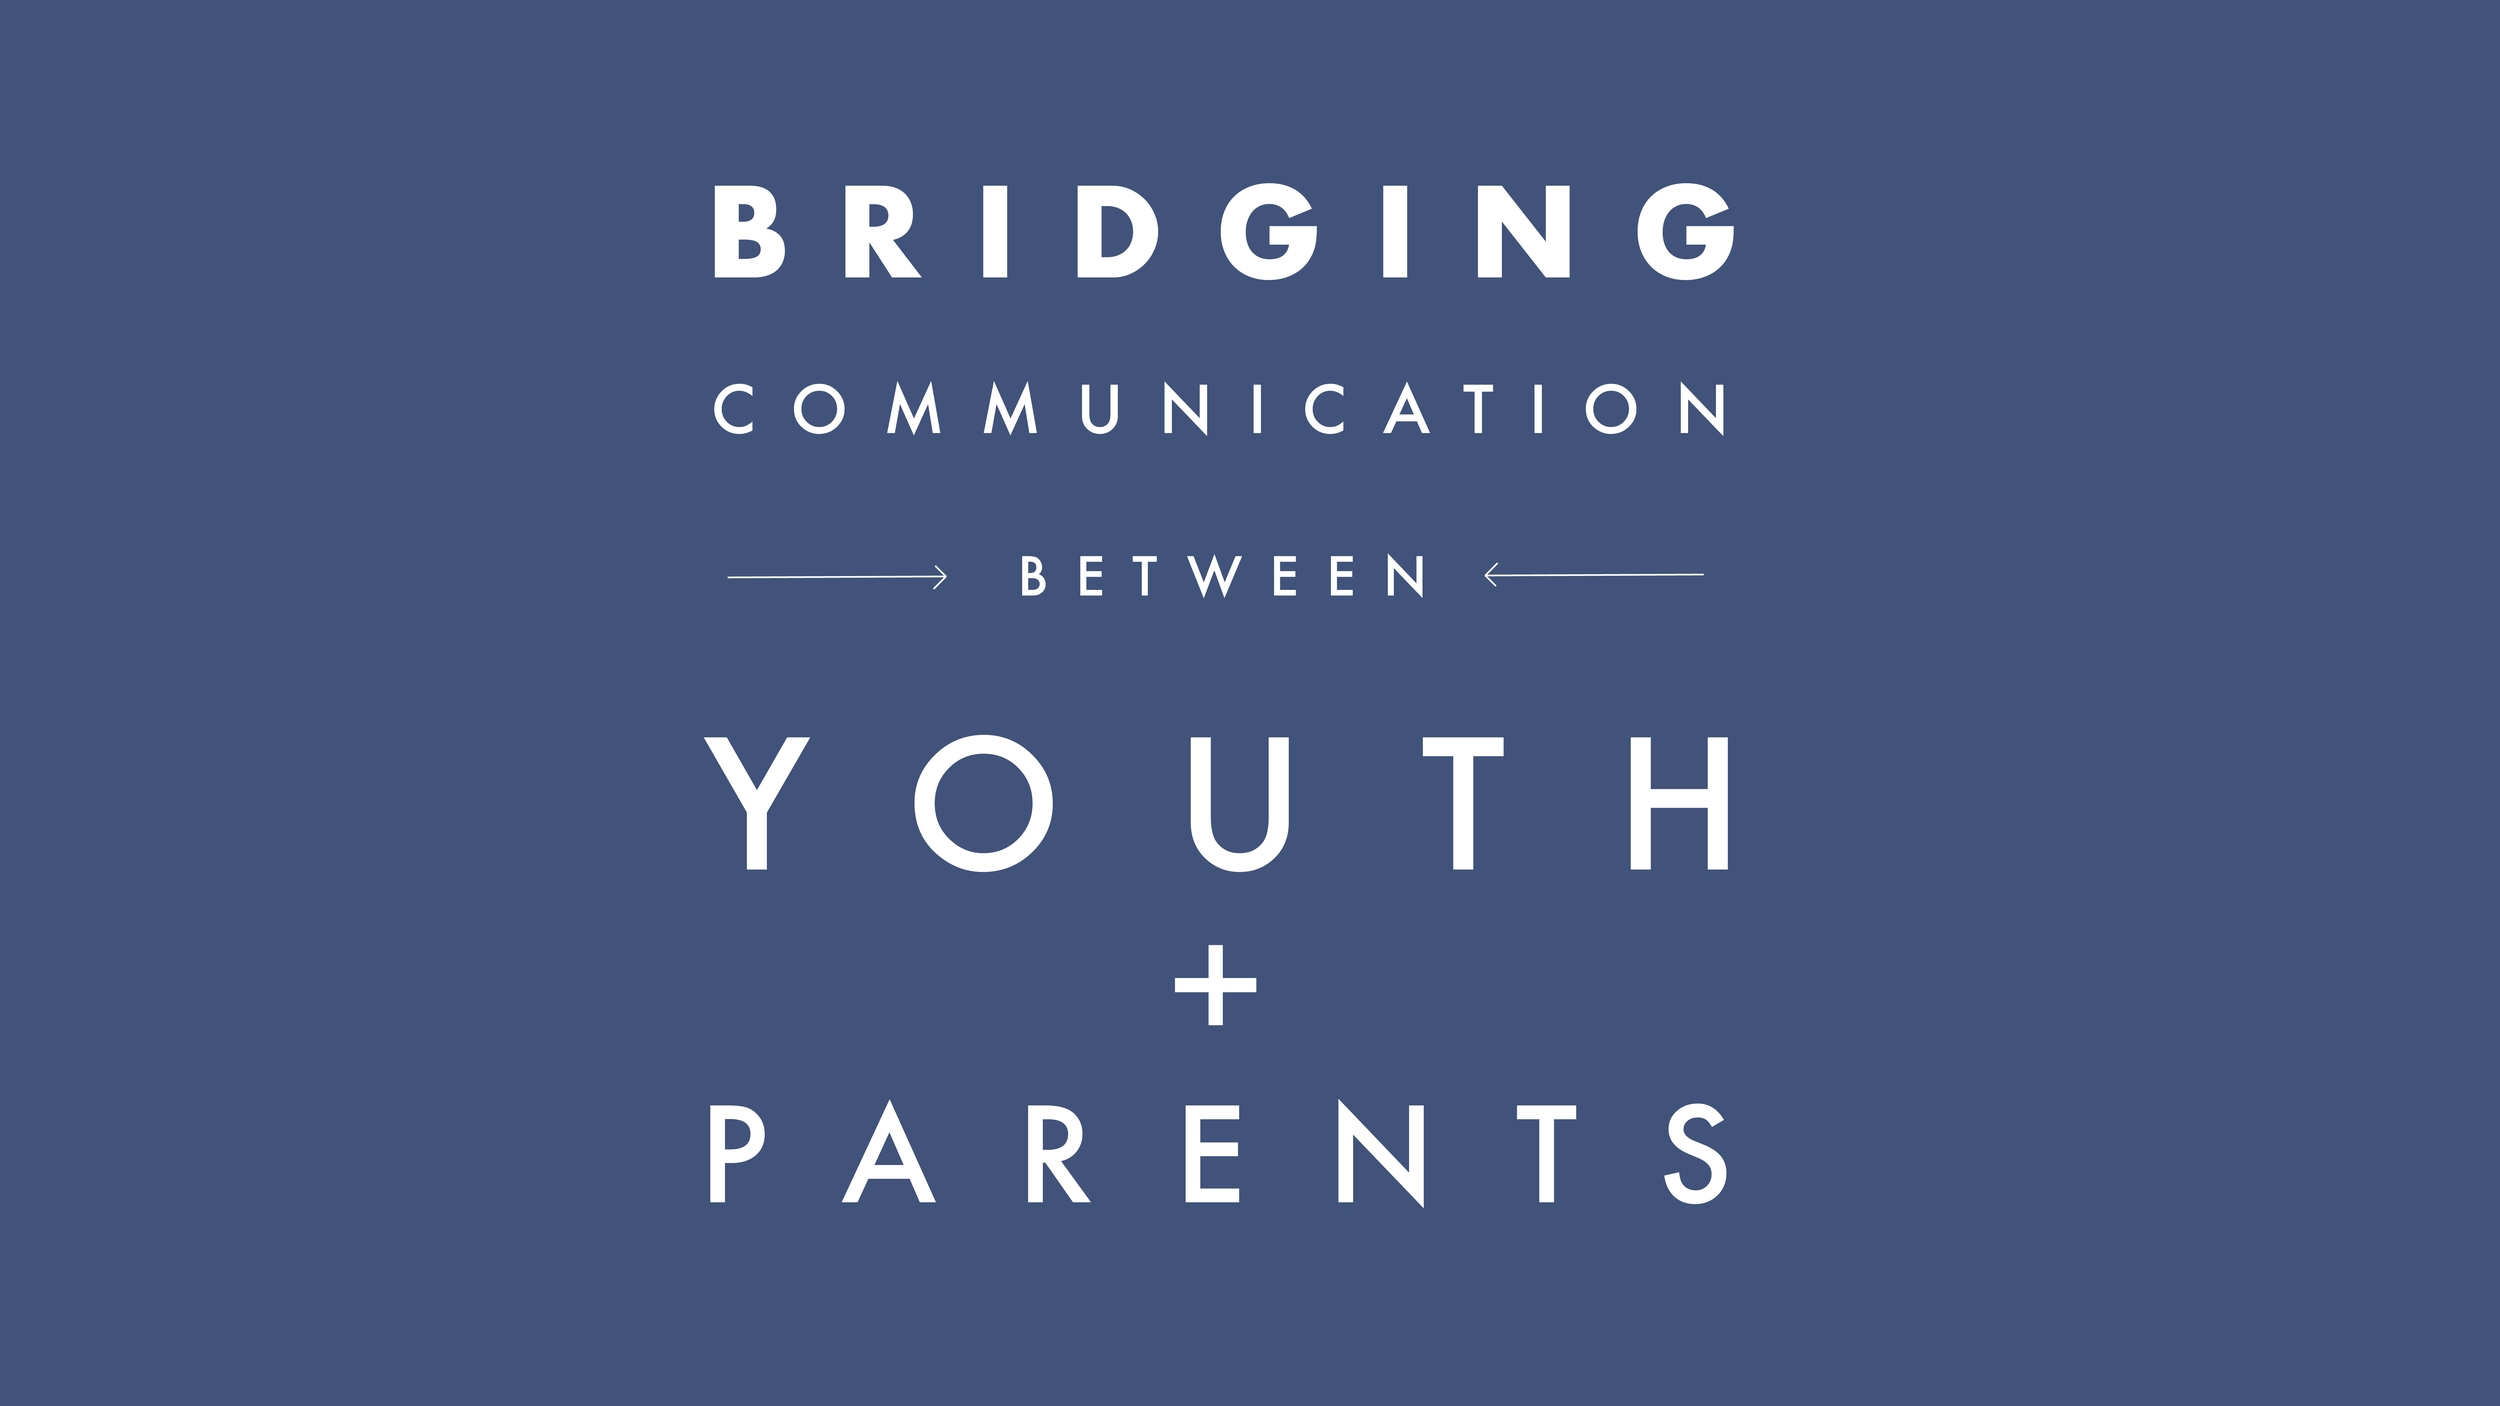 Bridging Communication between youth and parrents